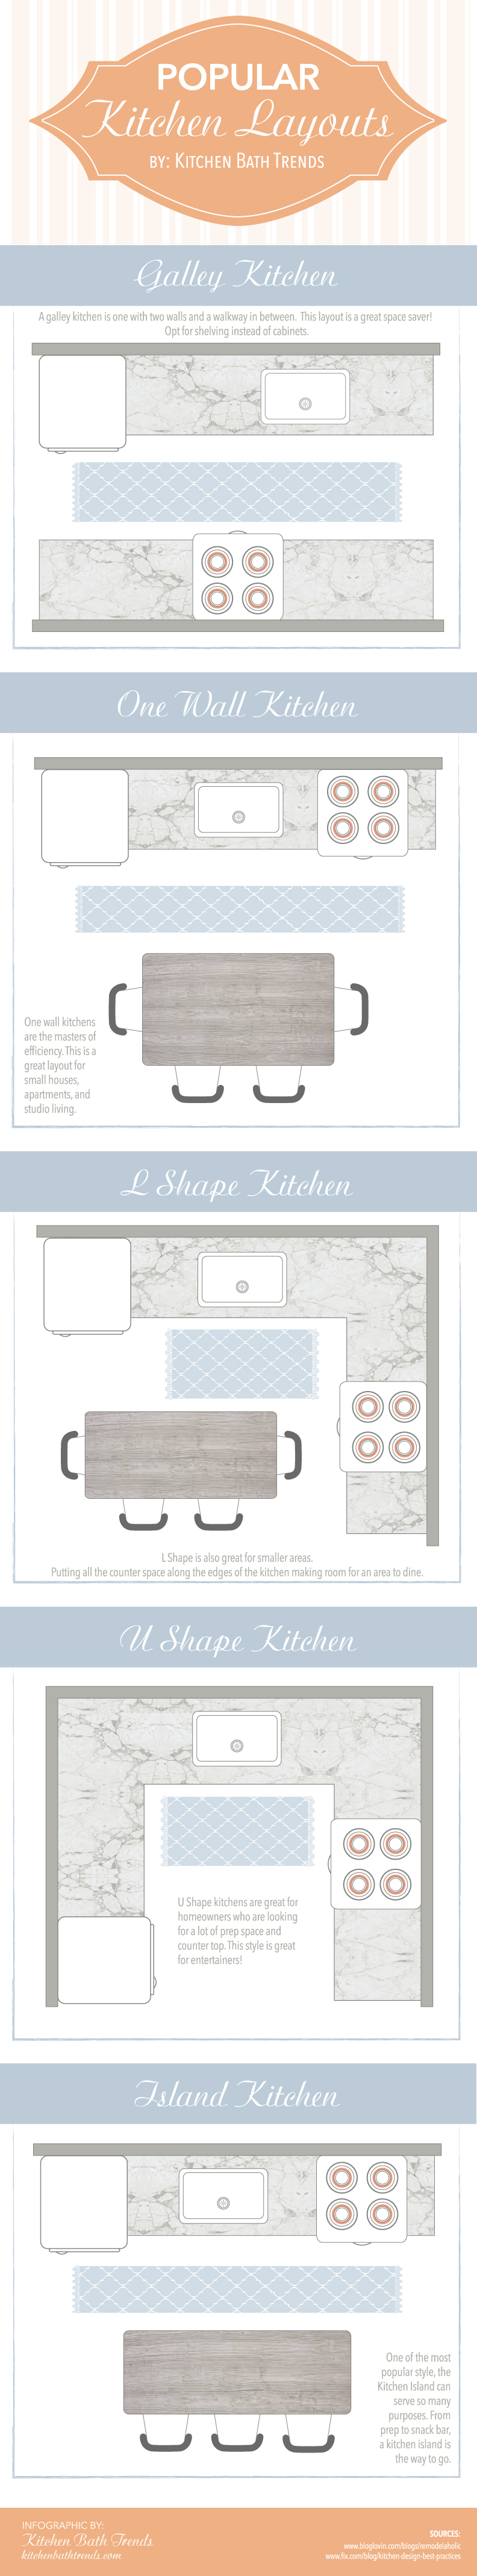 Kitchen Layout Infographic | Kitchen Bath Trends